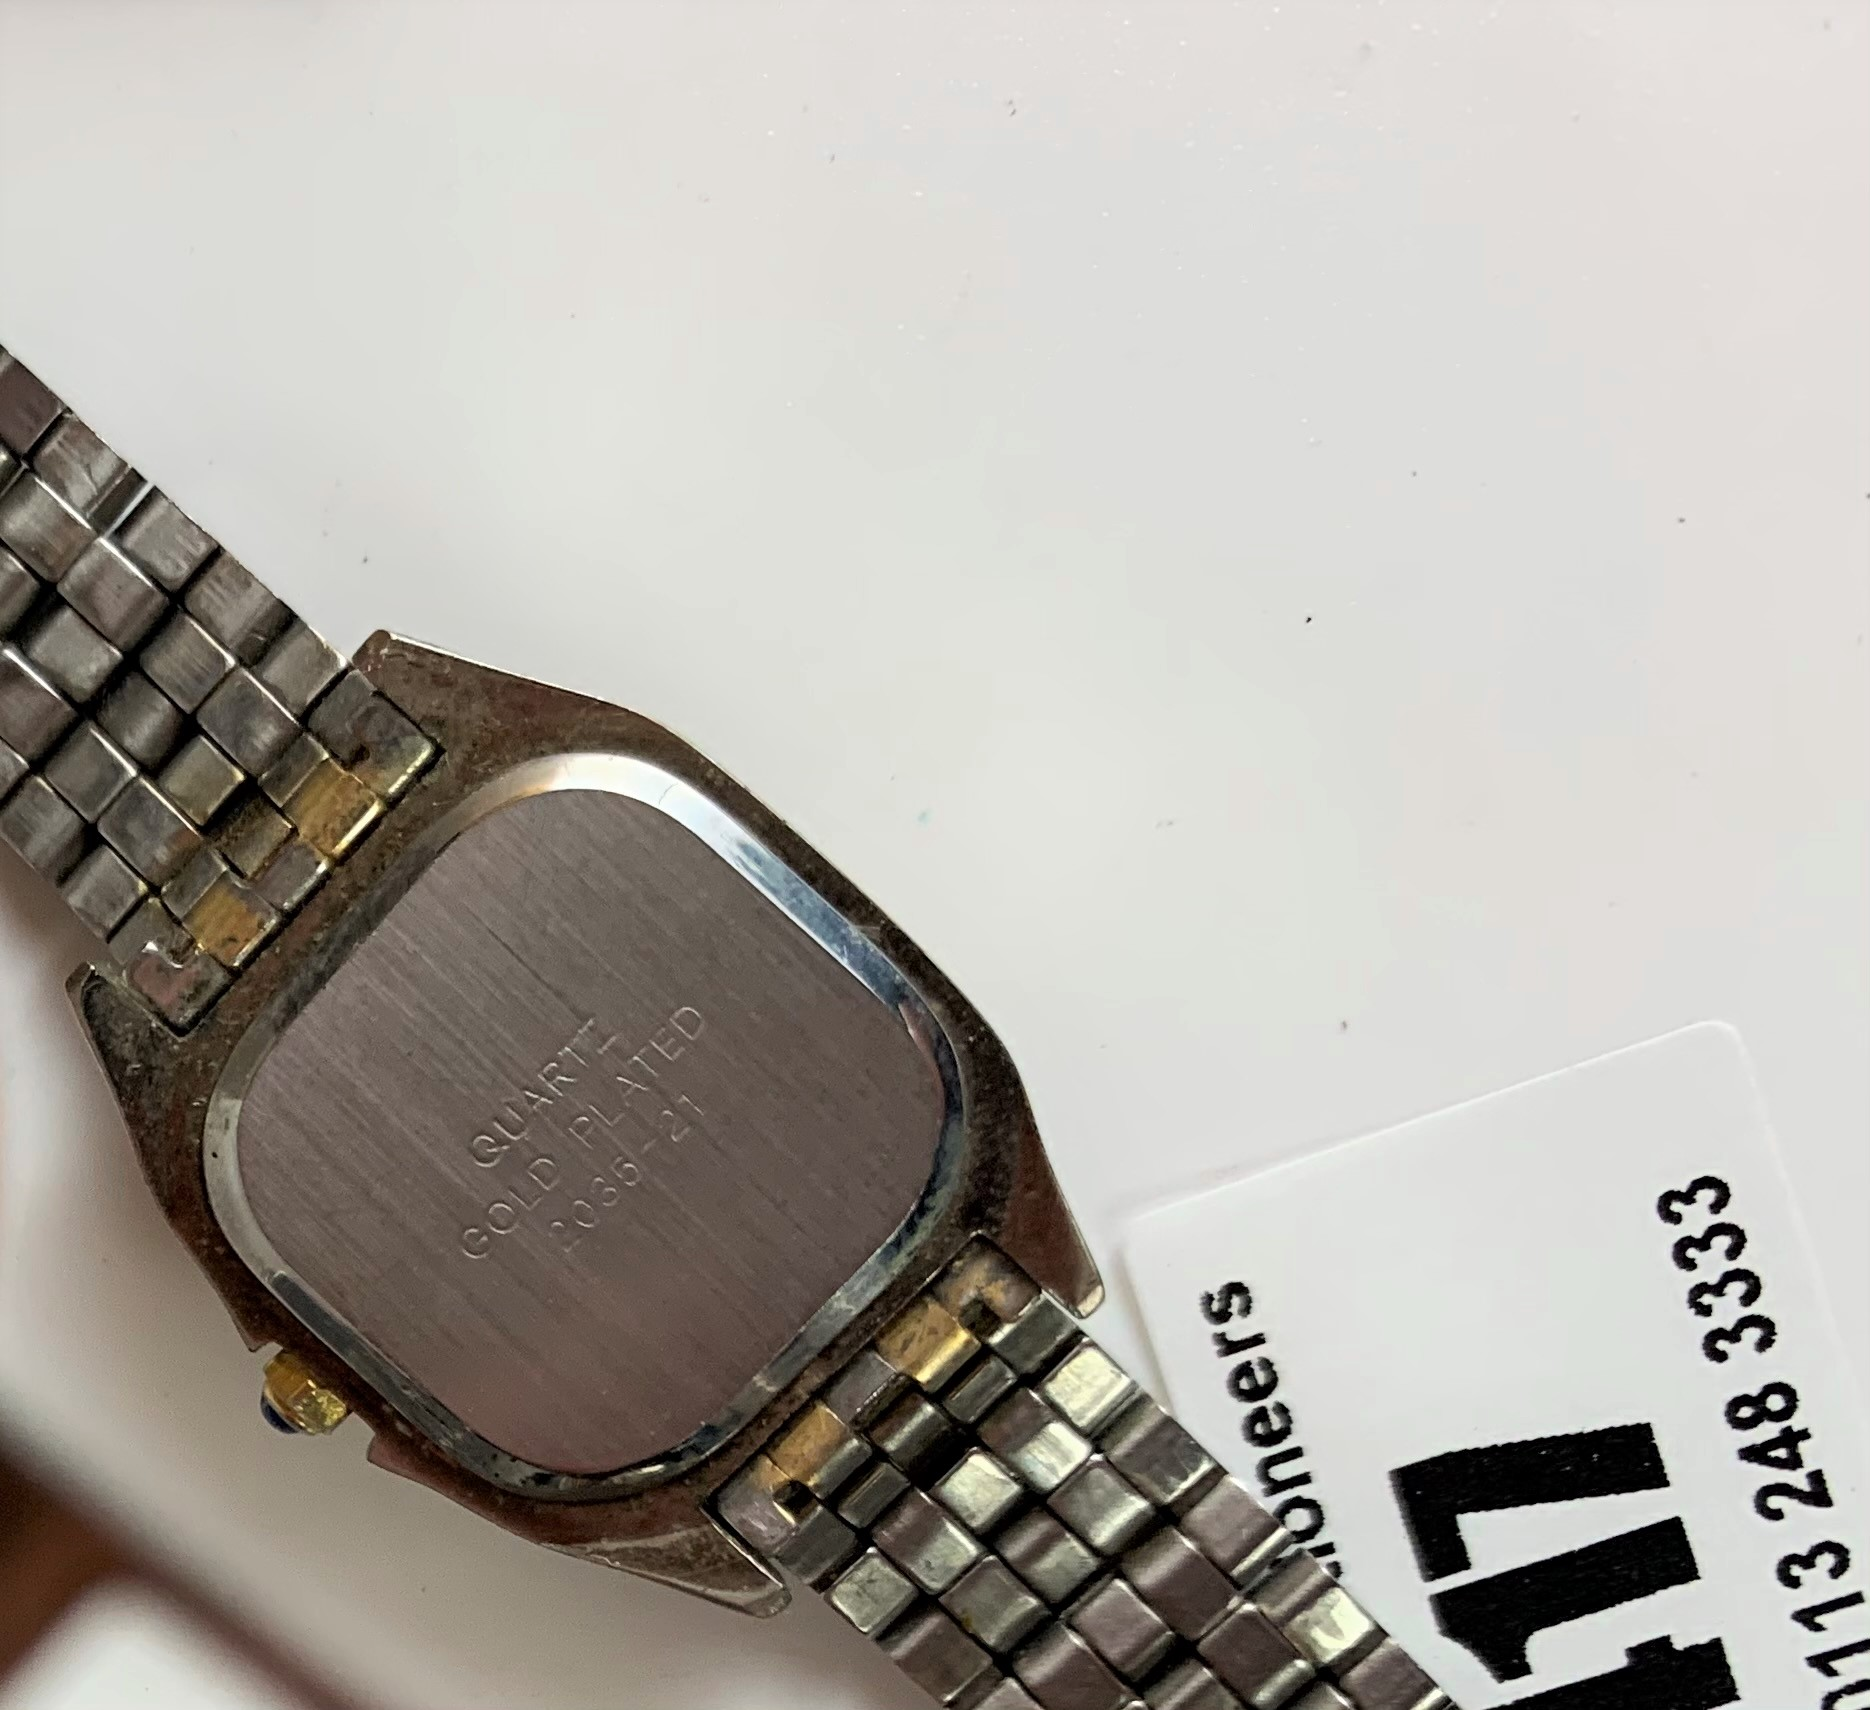 4 dress watches - Image 7 of 8